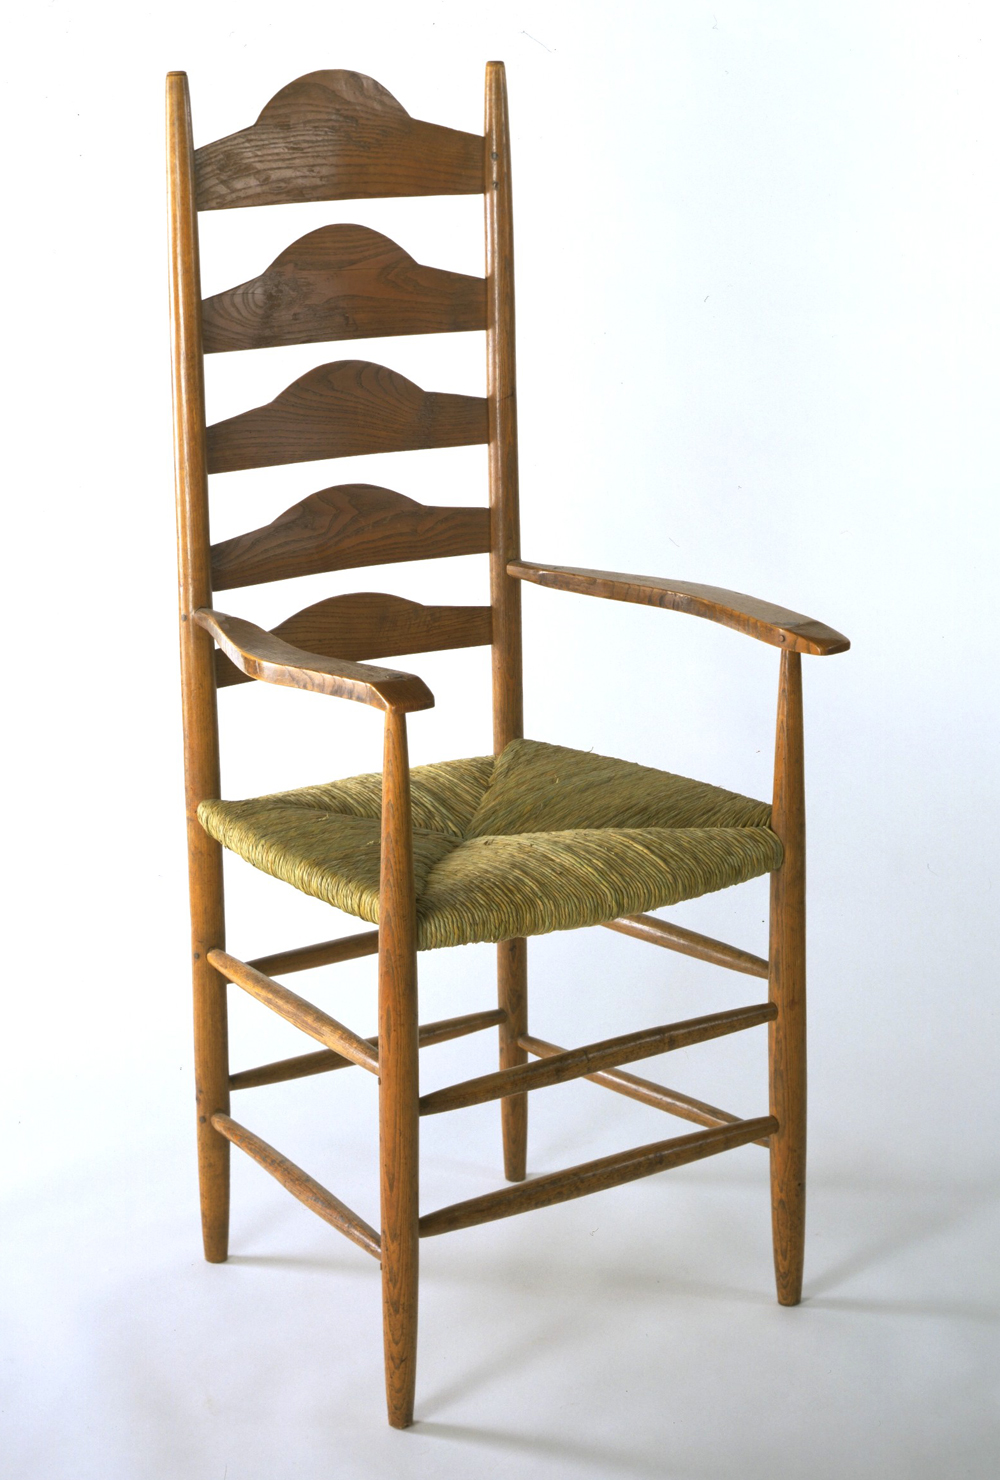 Ernest Gimson Chair. 1890.